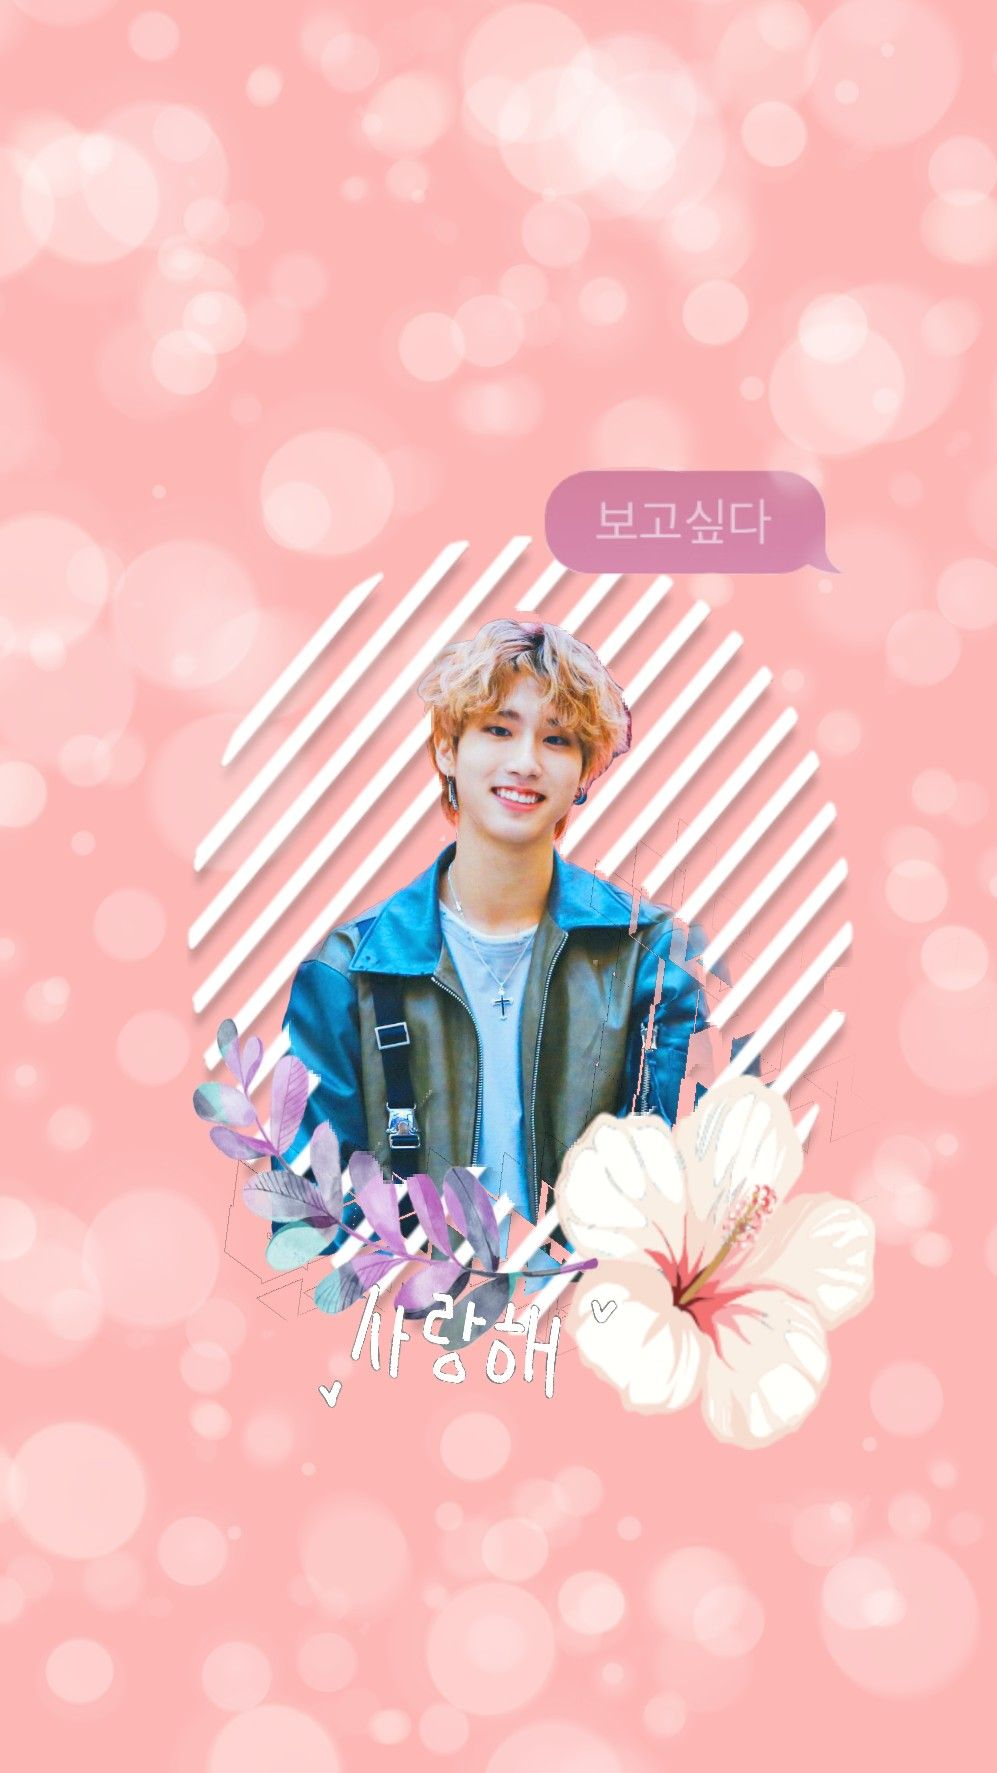 Han Jisung Cute Stray Kids Wallpaper Background Iphone Samsung Lg